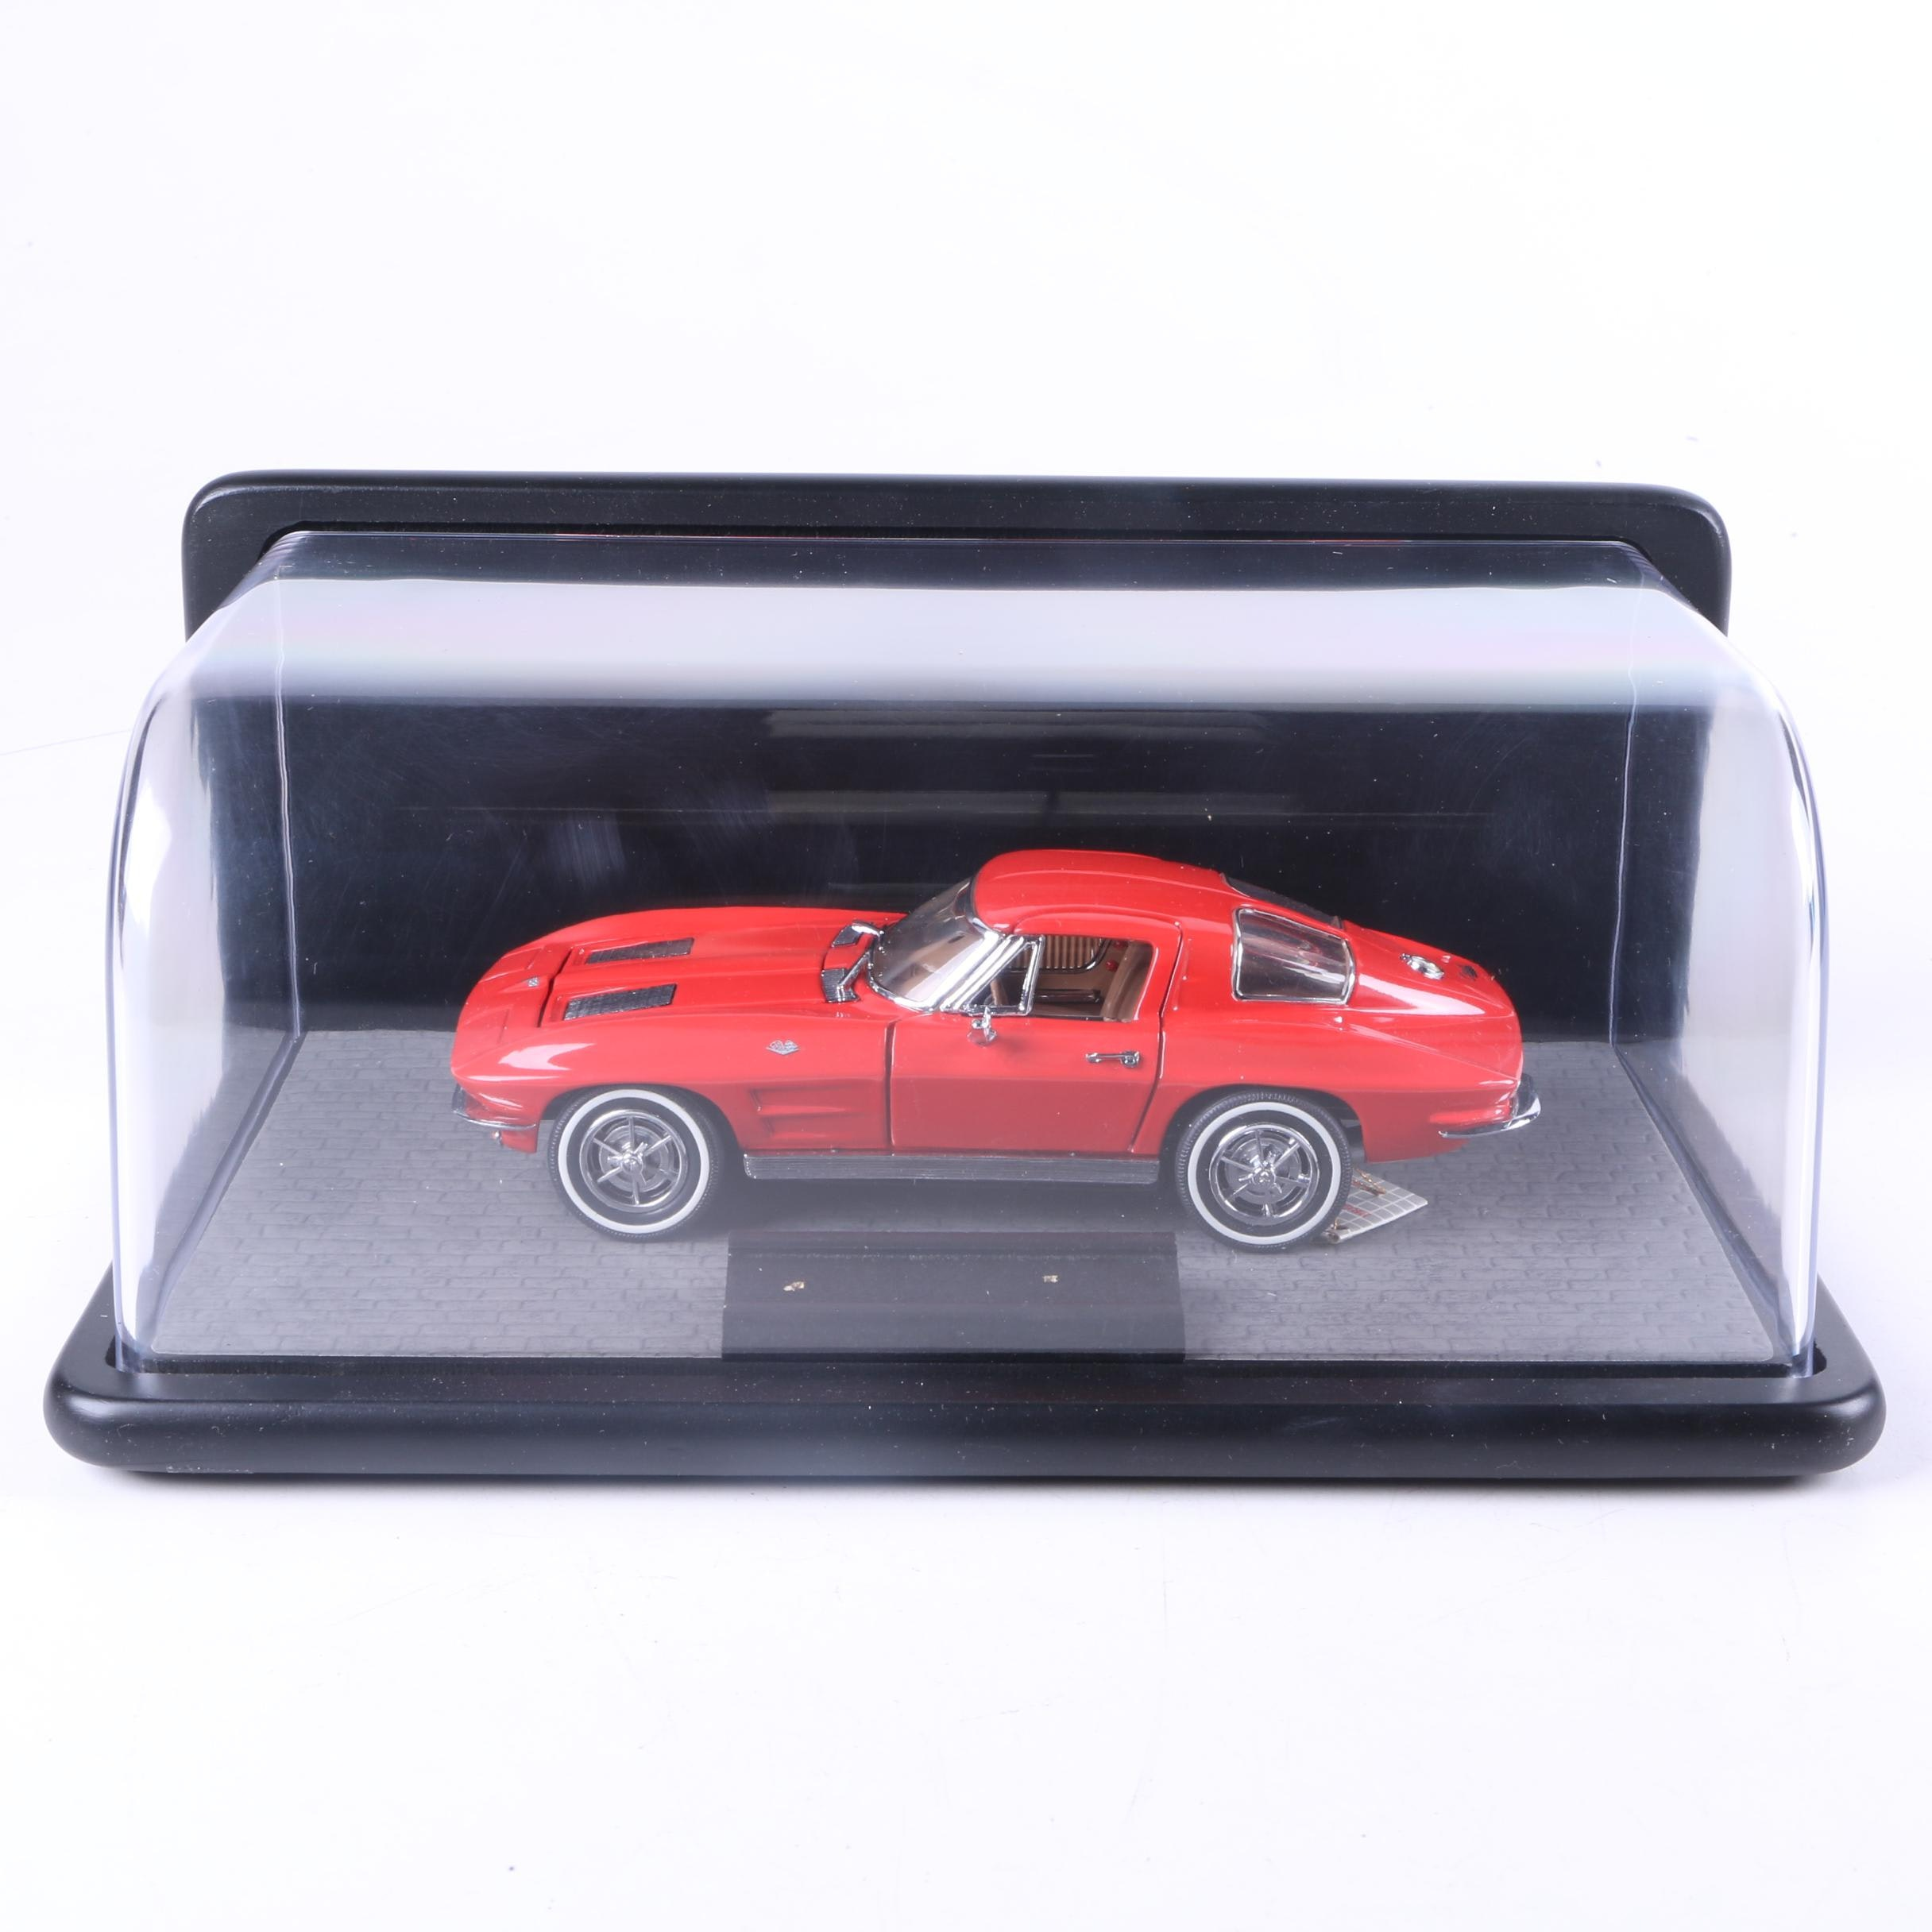 Franklin Mint 1963 Chevrolet Corvette Die-Cast Car